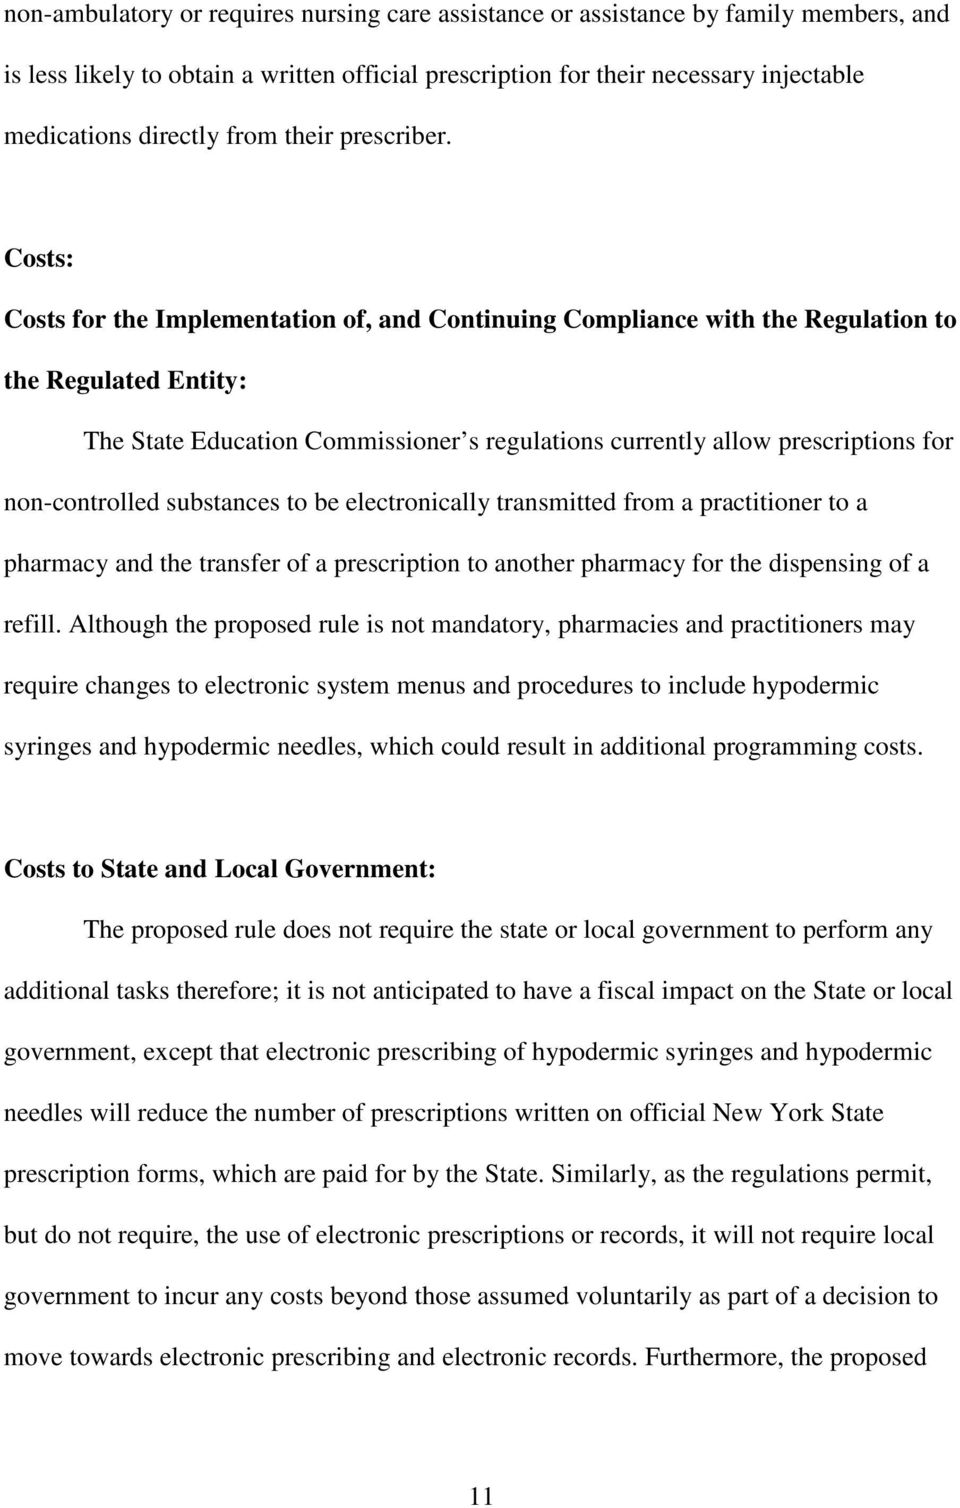 Costs: Costs for the Implementation of, and Continuing Compliance with the Regulation to the Regulated Entity: The State Education Commissioner s regulations currently allow prescriptions for